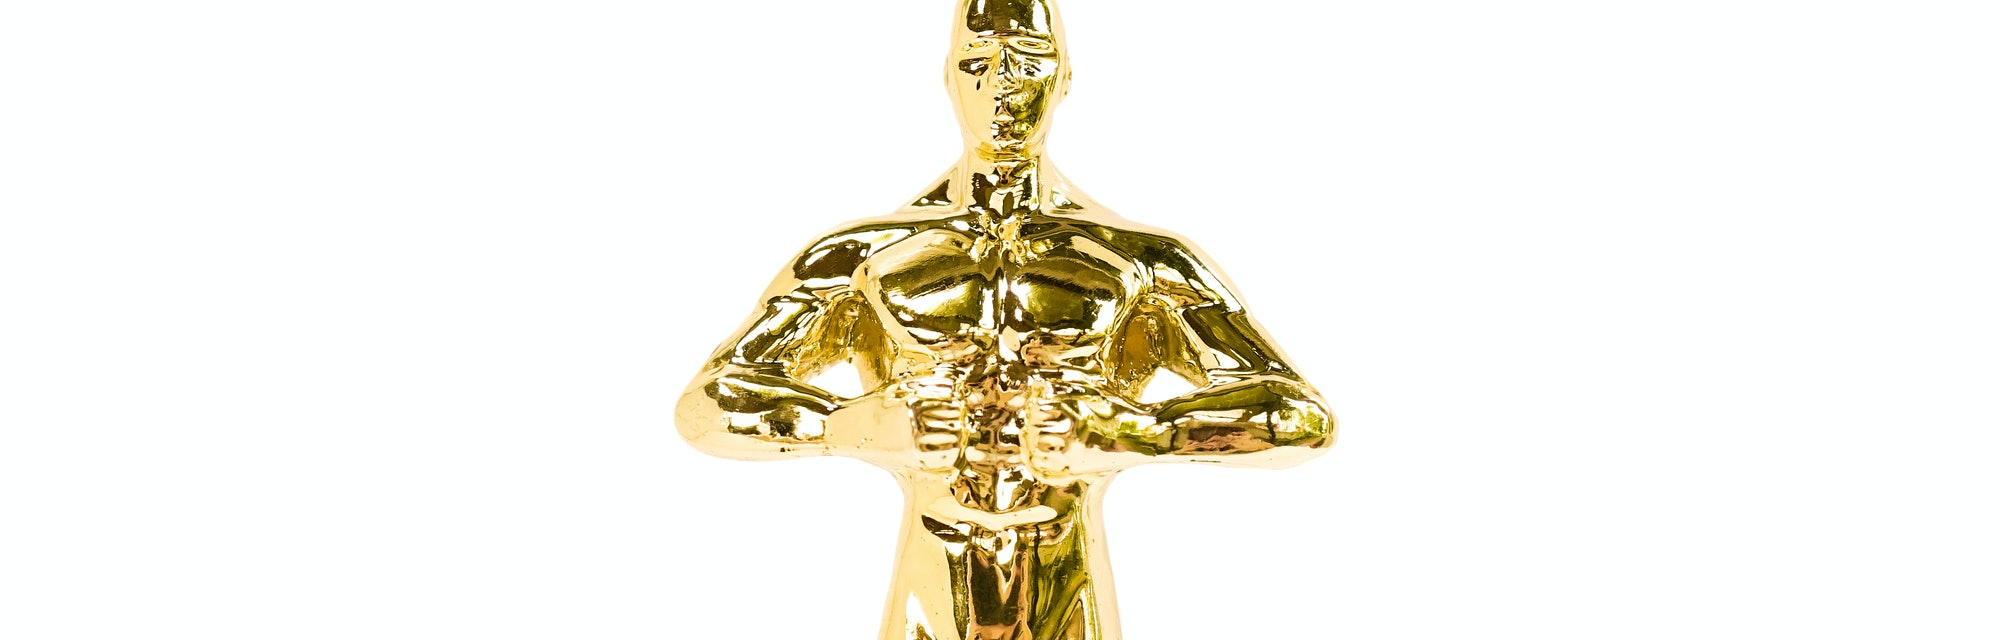 Oscar Golden award or trophy isolated on a white background. Success and victory concept.